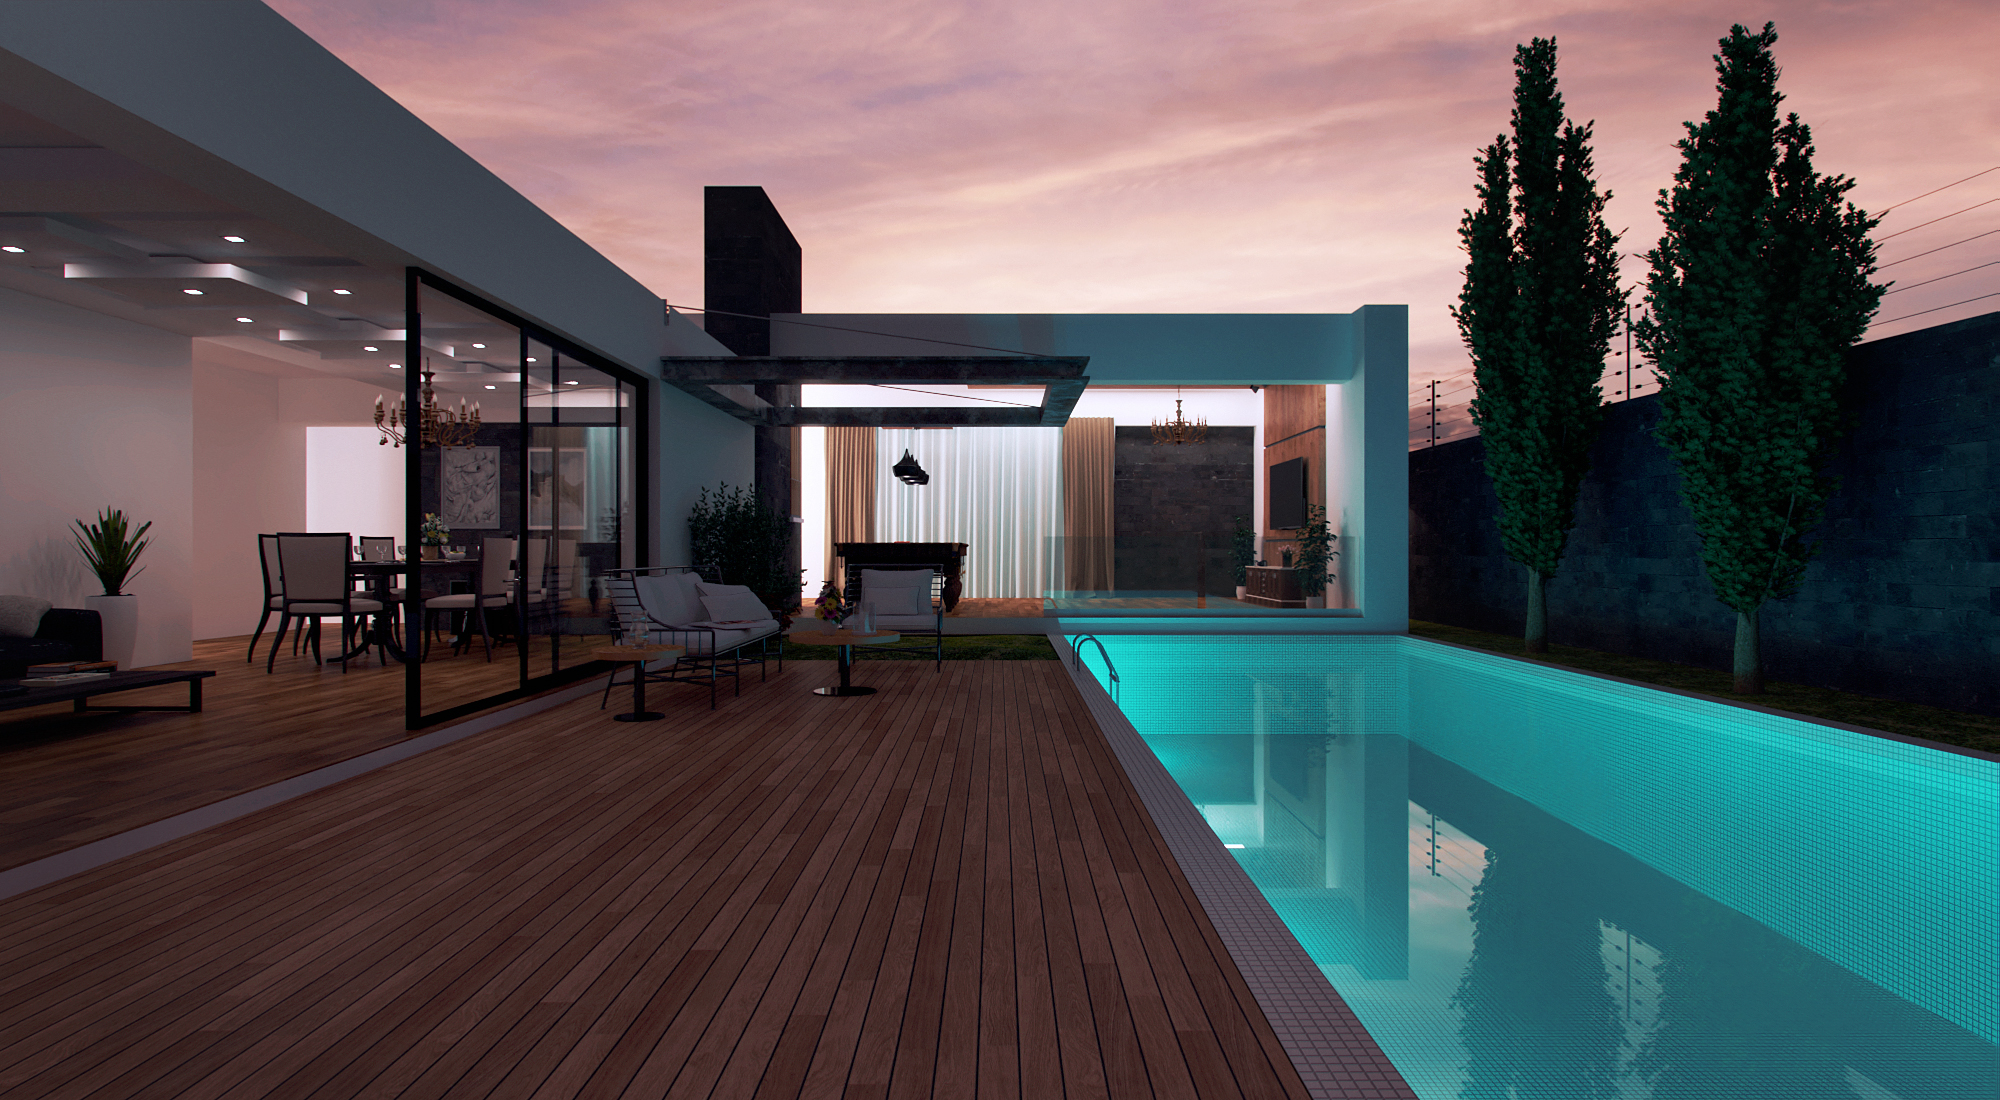 Poolside sunset render with ProWalker gpu for SketchUp